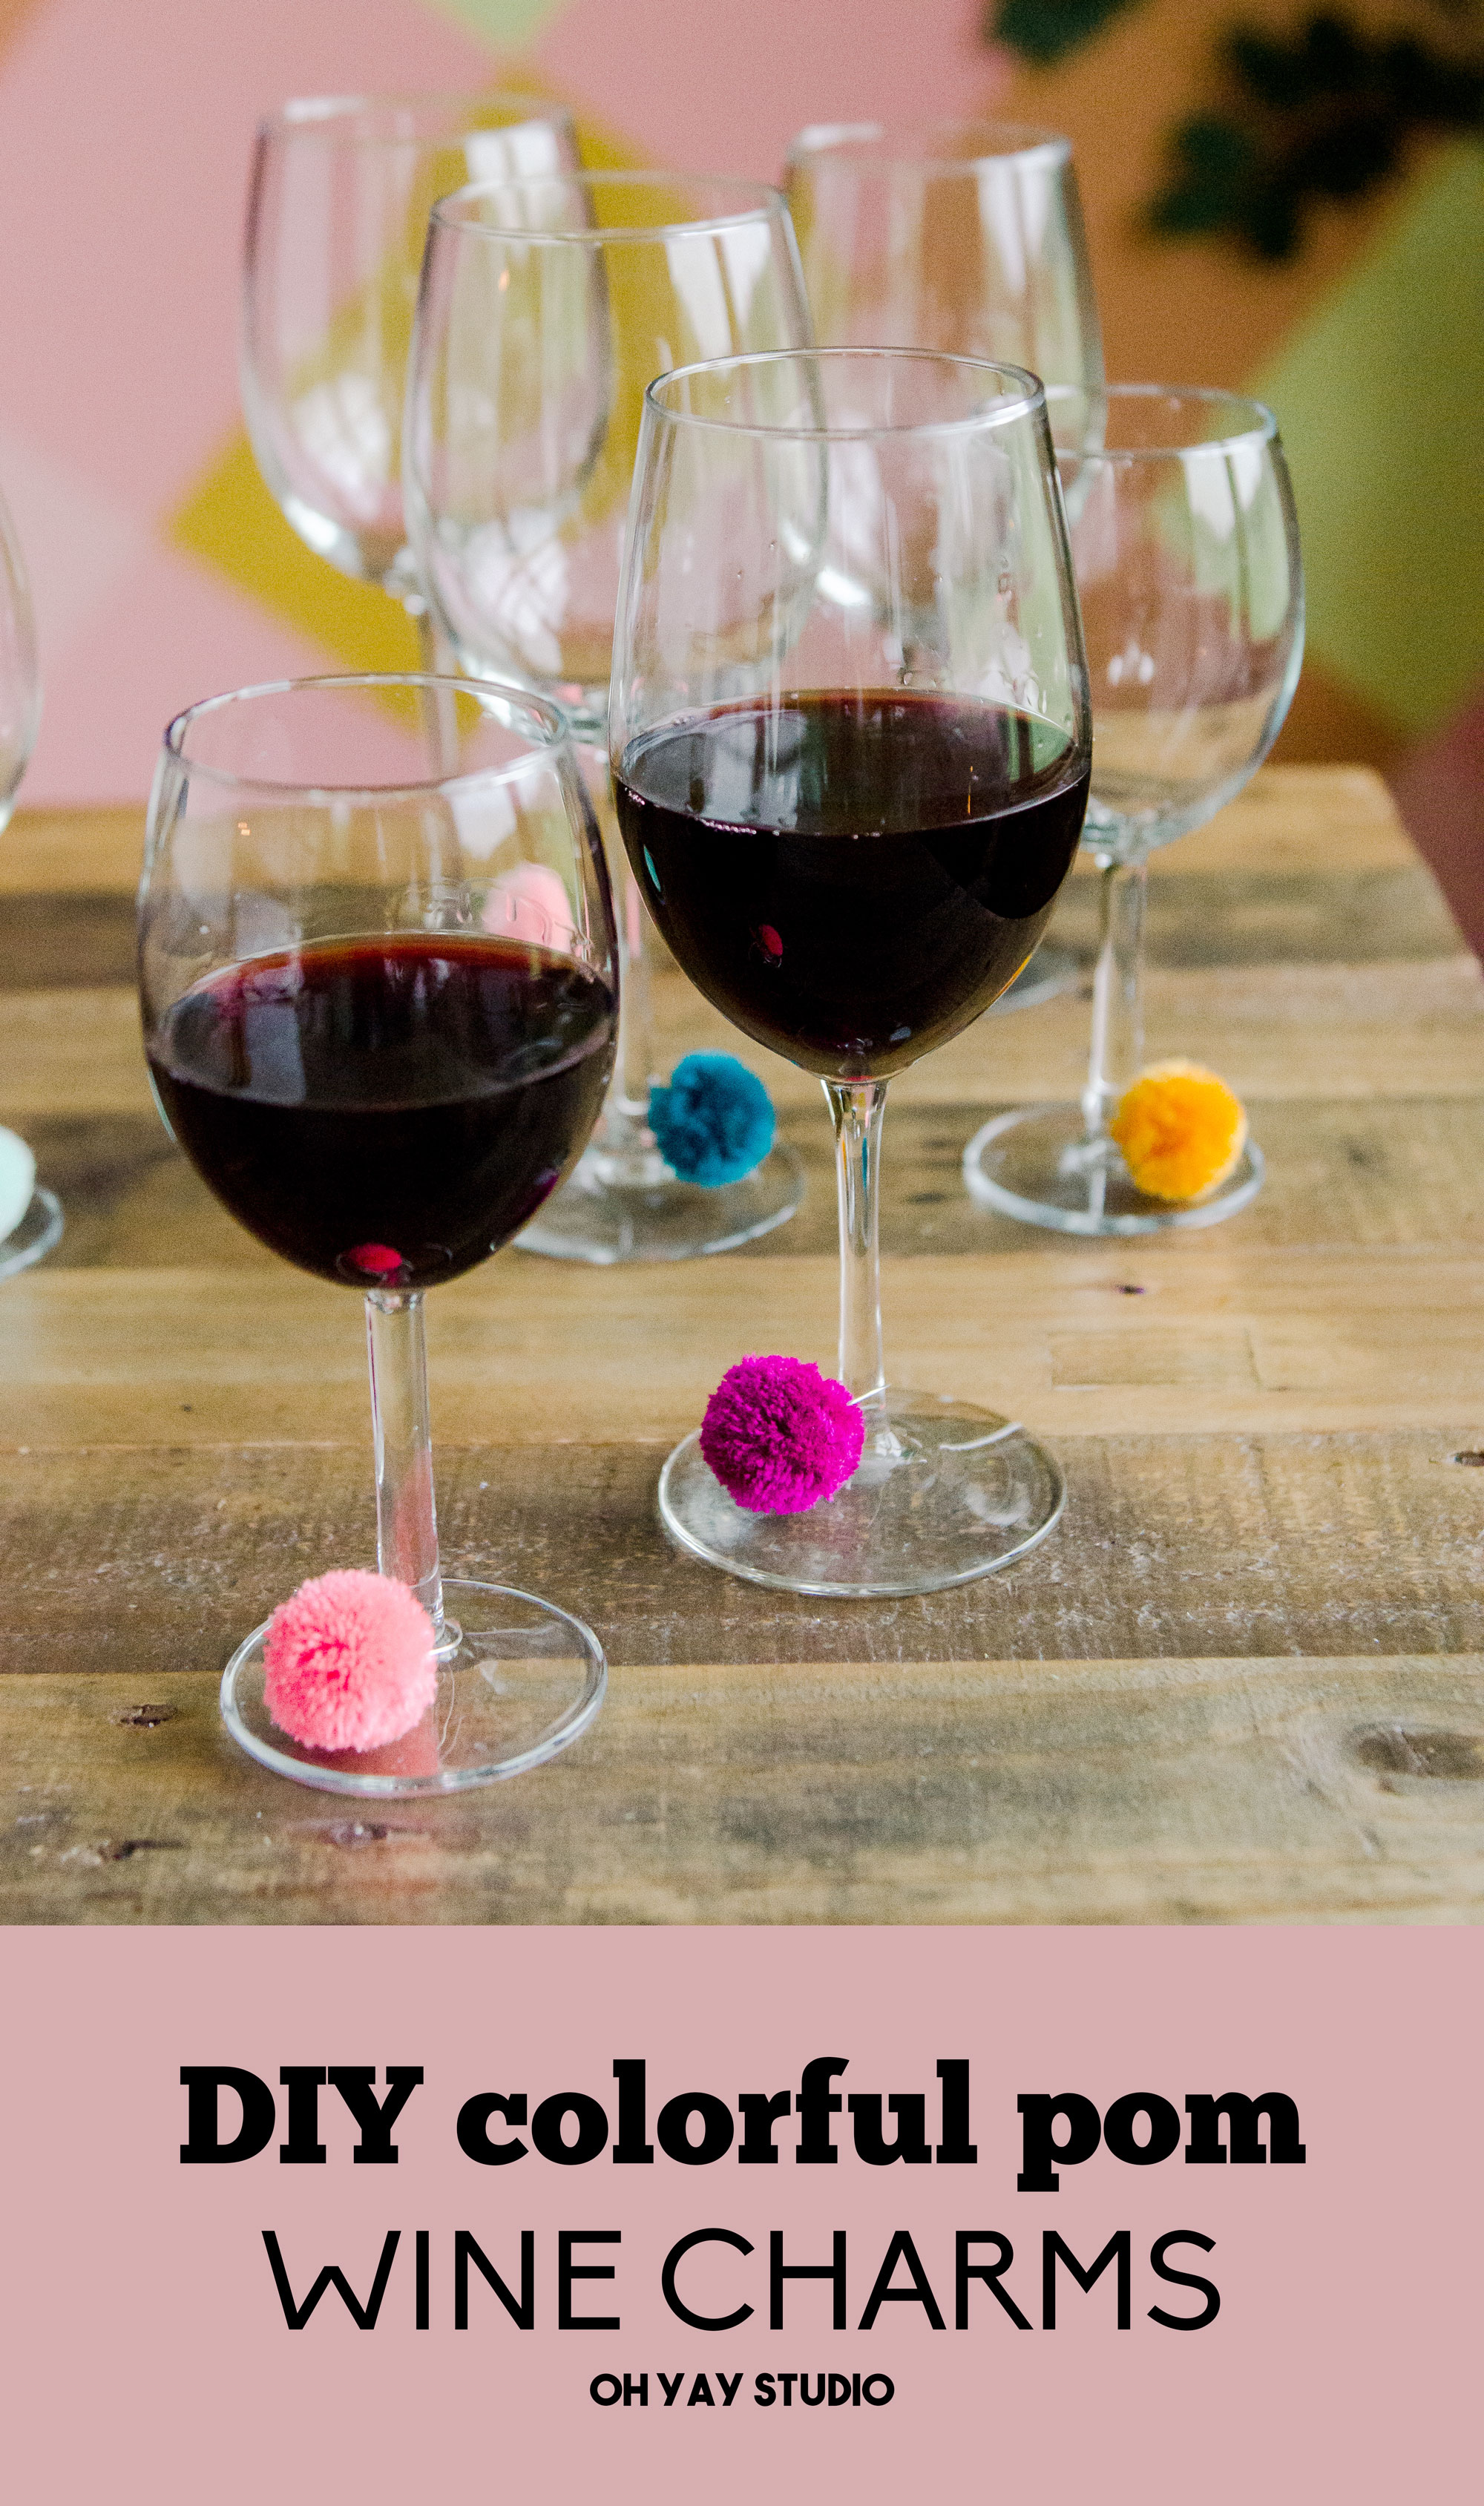 DIY Pom wine charms, Colorful wine charms, How to make the best pom pom, DIY pom poms, DIY wine charms, fast craft ideas, crafting ideas, party craft ideas